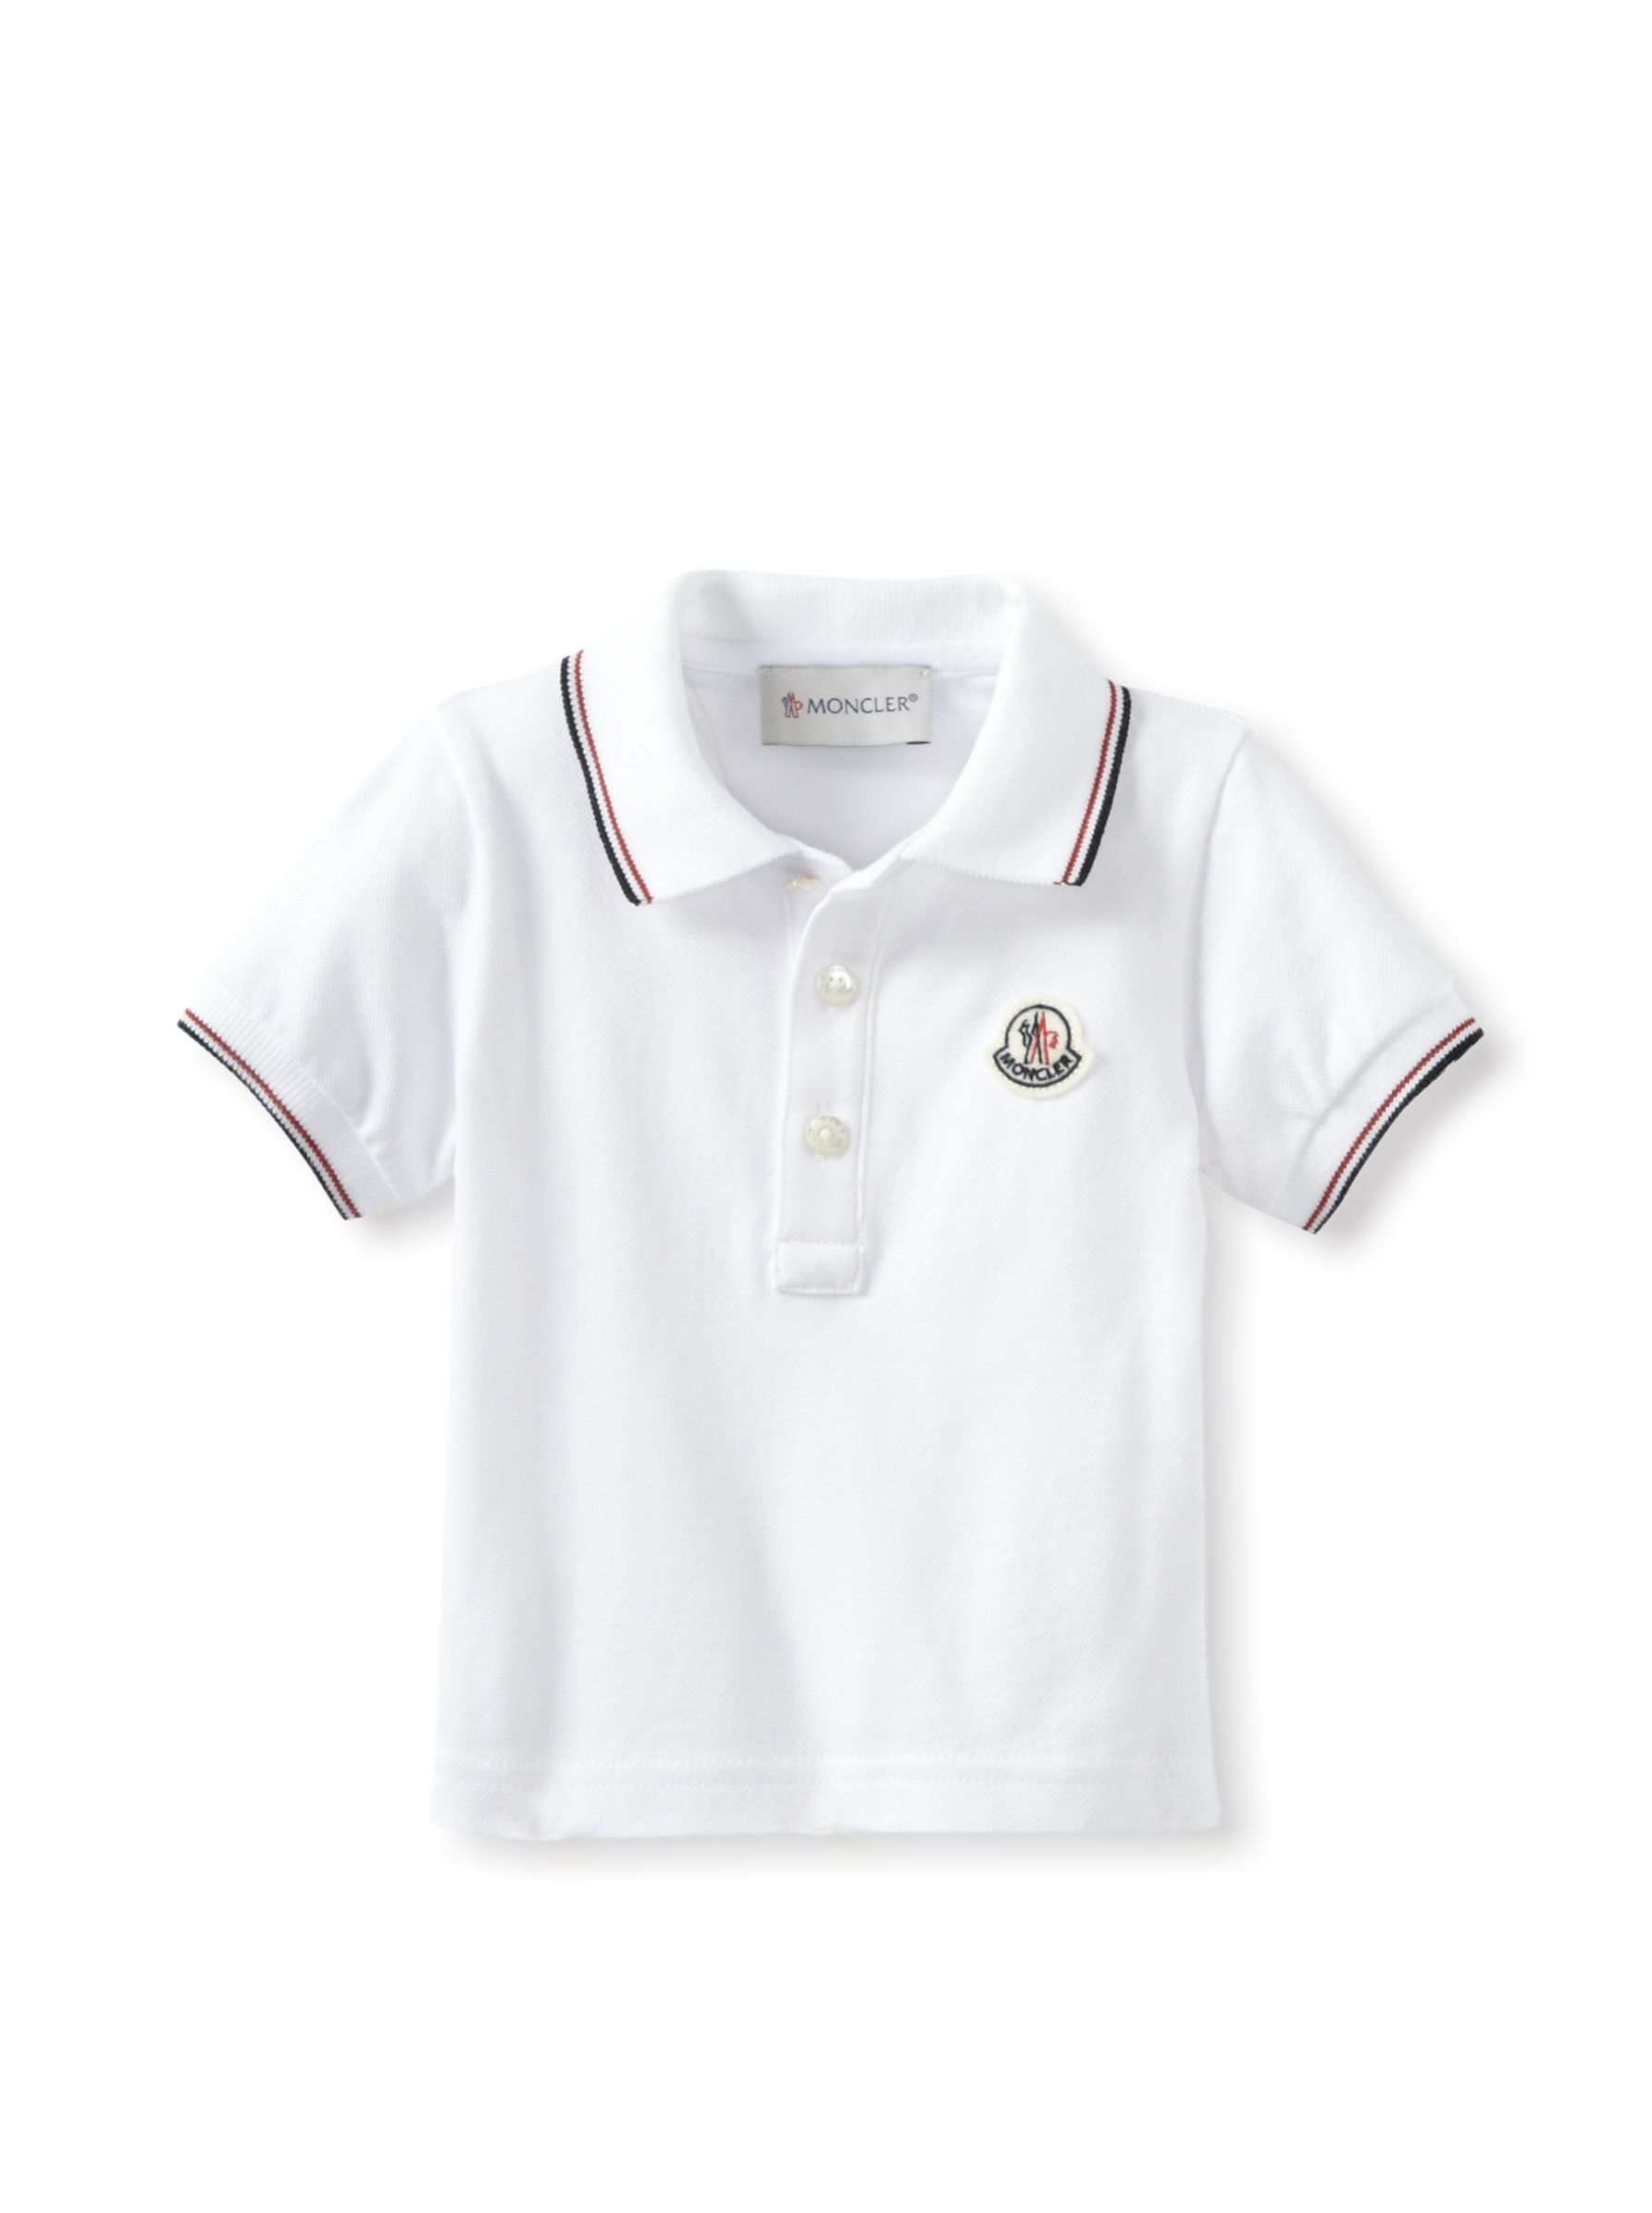 9bfe3d72 Moncler Kid's Classic Polo (White) Lightweight pique knit, polo-style  collar, button closure, striped ribbed knit trim #Polo # #